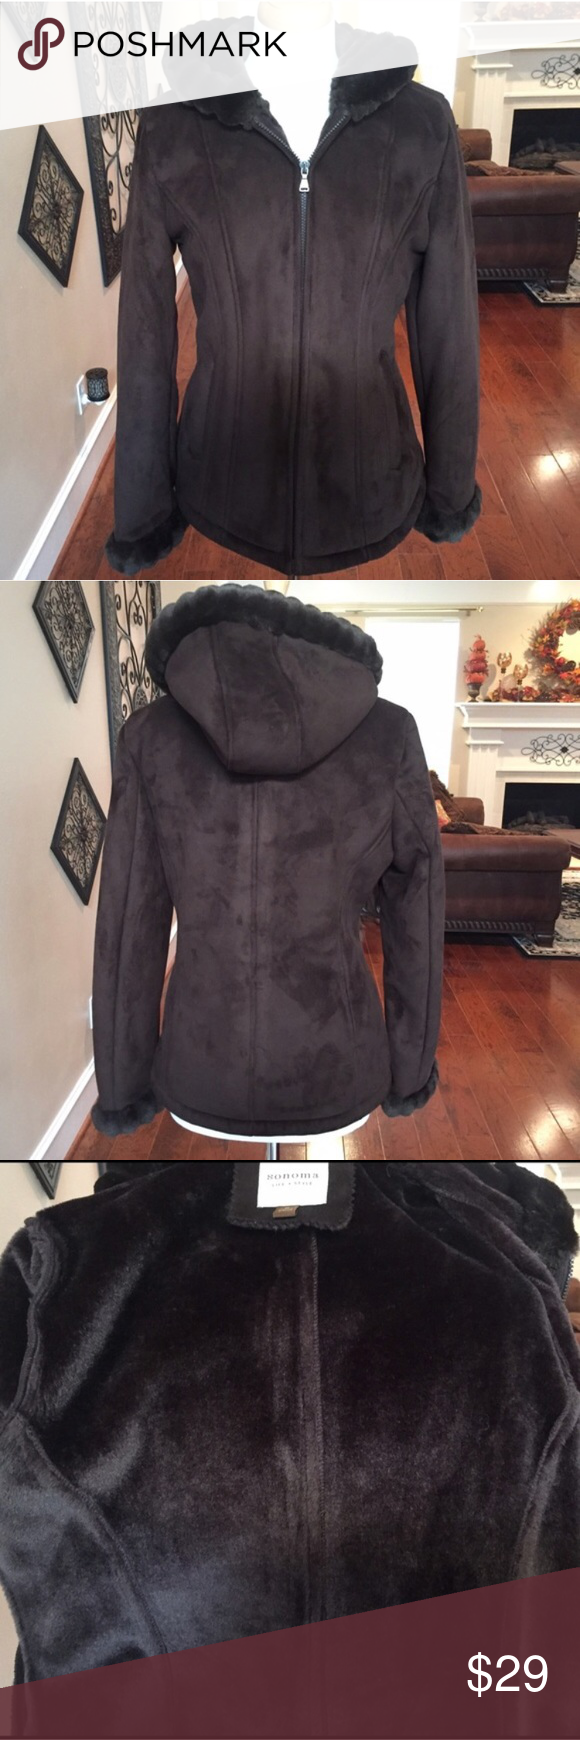 "Brown hooded comfy jacket size M 🌺 Beautiful brown hooded comfy jacket in Medium. Excellent condition. Interior is a warm very soft material. Bust measurement is approx. 41"" all around and length is approx. 26"". Remember to bundle 2 or more items and save! 😊. Please note all my items are in good condition with no stains, tears or rips unless otherwise noted. Any imperfections will be disclosed in listings. All items are recorded while packaging and during shipping to prevent any dishonest…"